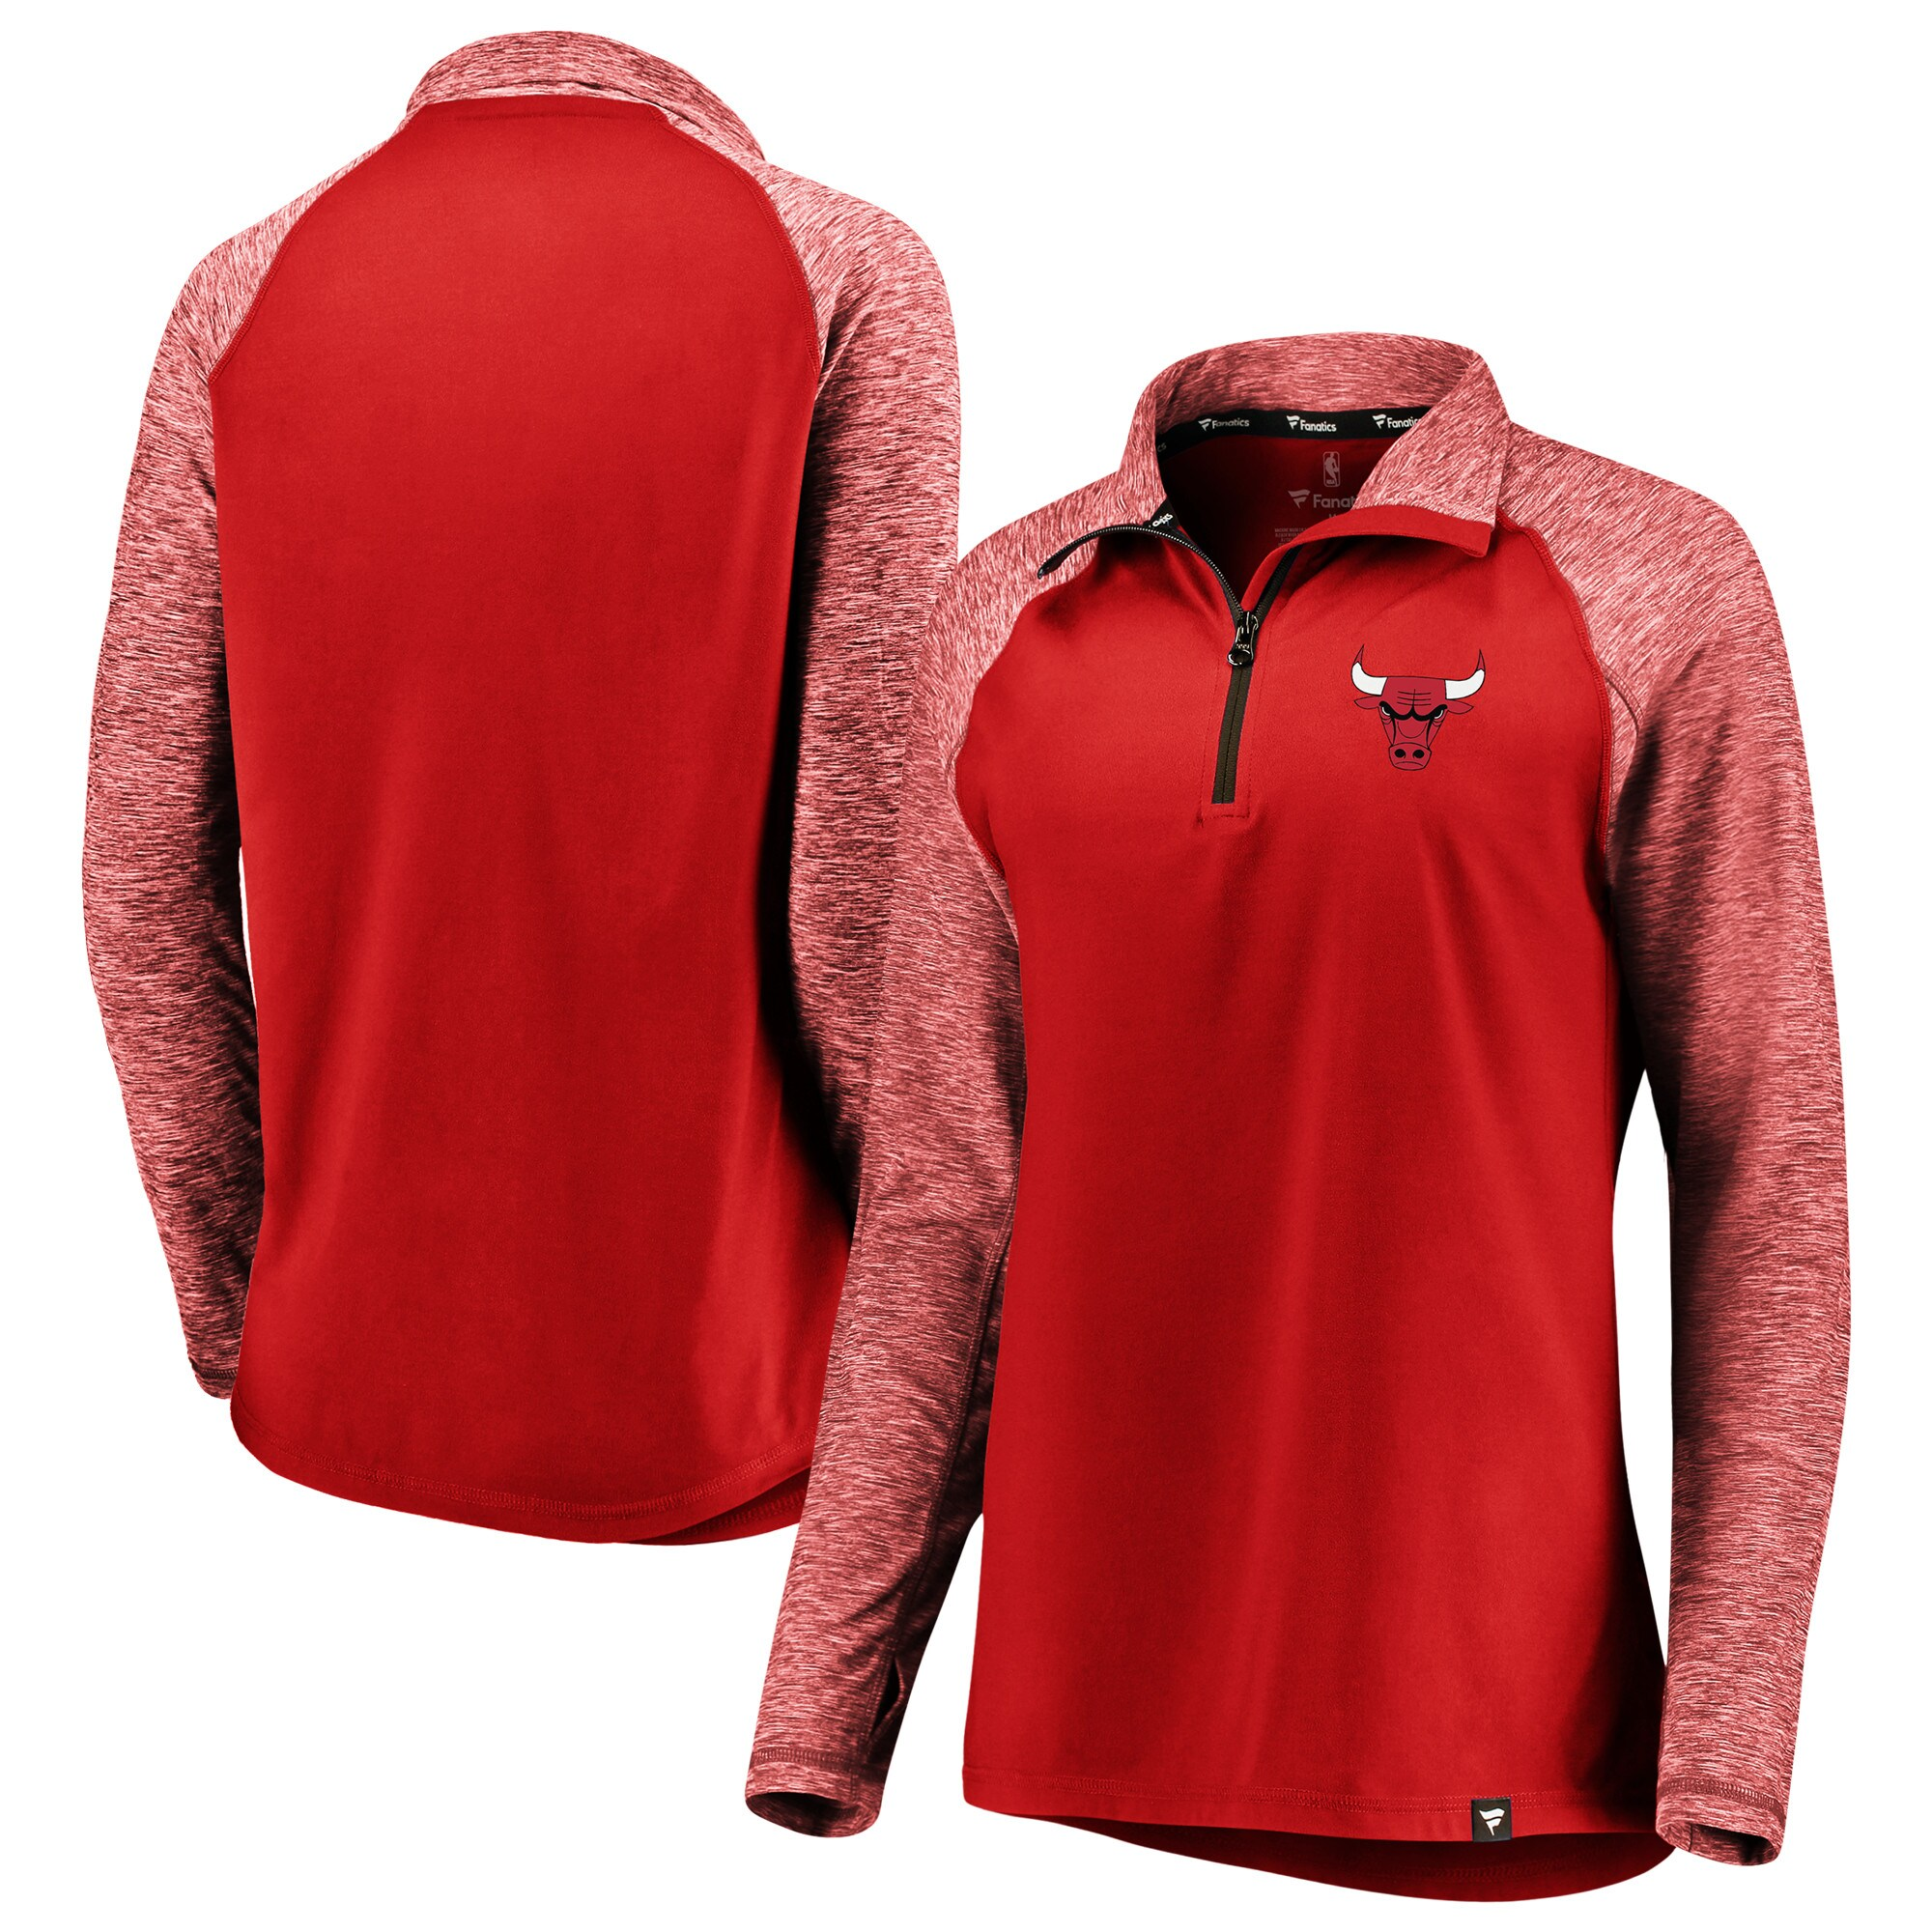 Chicago Bulls Fanatics Branded Women's Made to Move Static Performance Raglan Sleeve Quarter-Zip Pullover Jacket - Red/Heathered Red